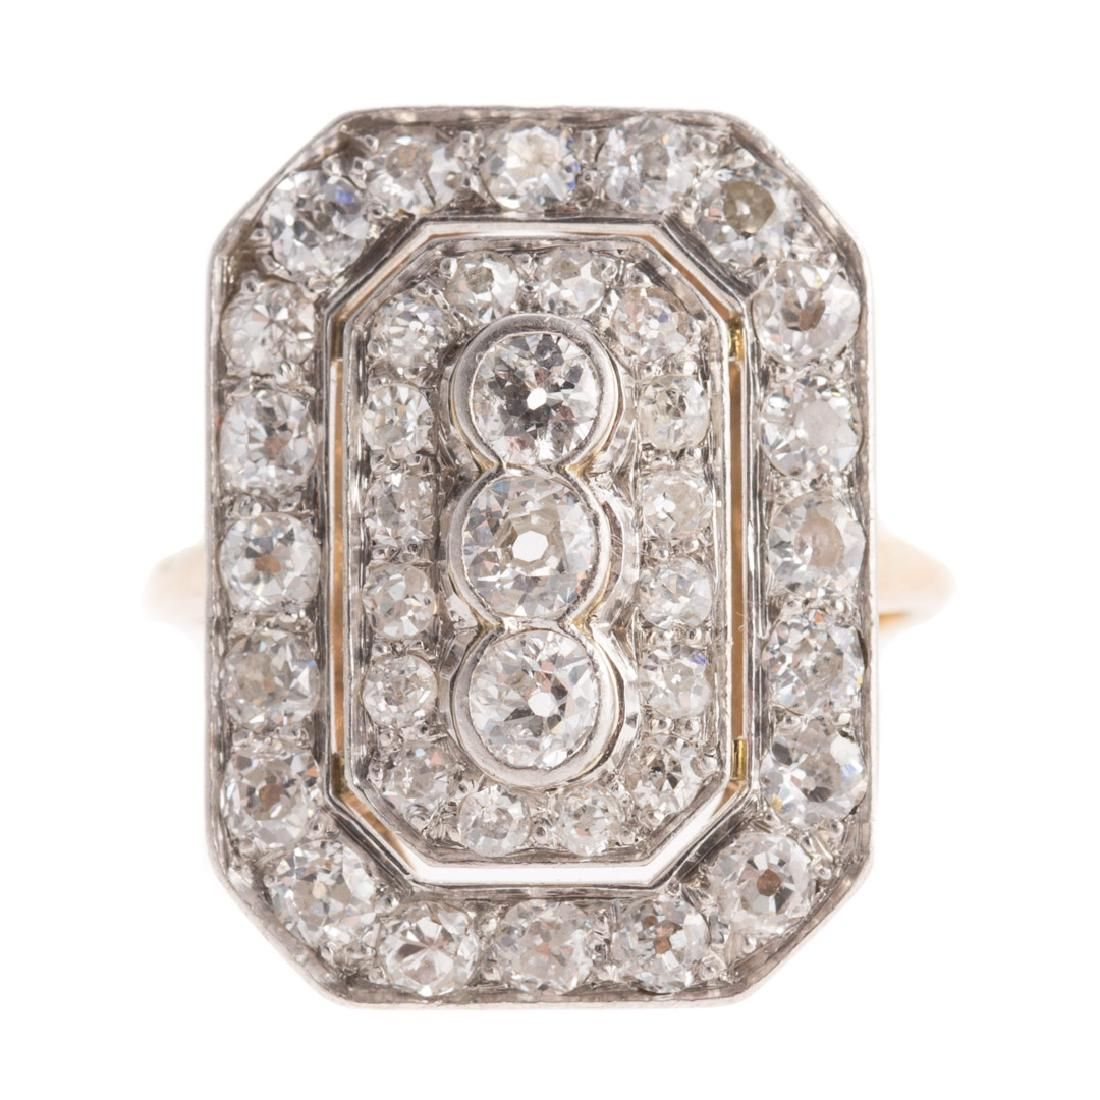 A Lady's Art Deco 14K/Platinum Diamond